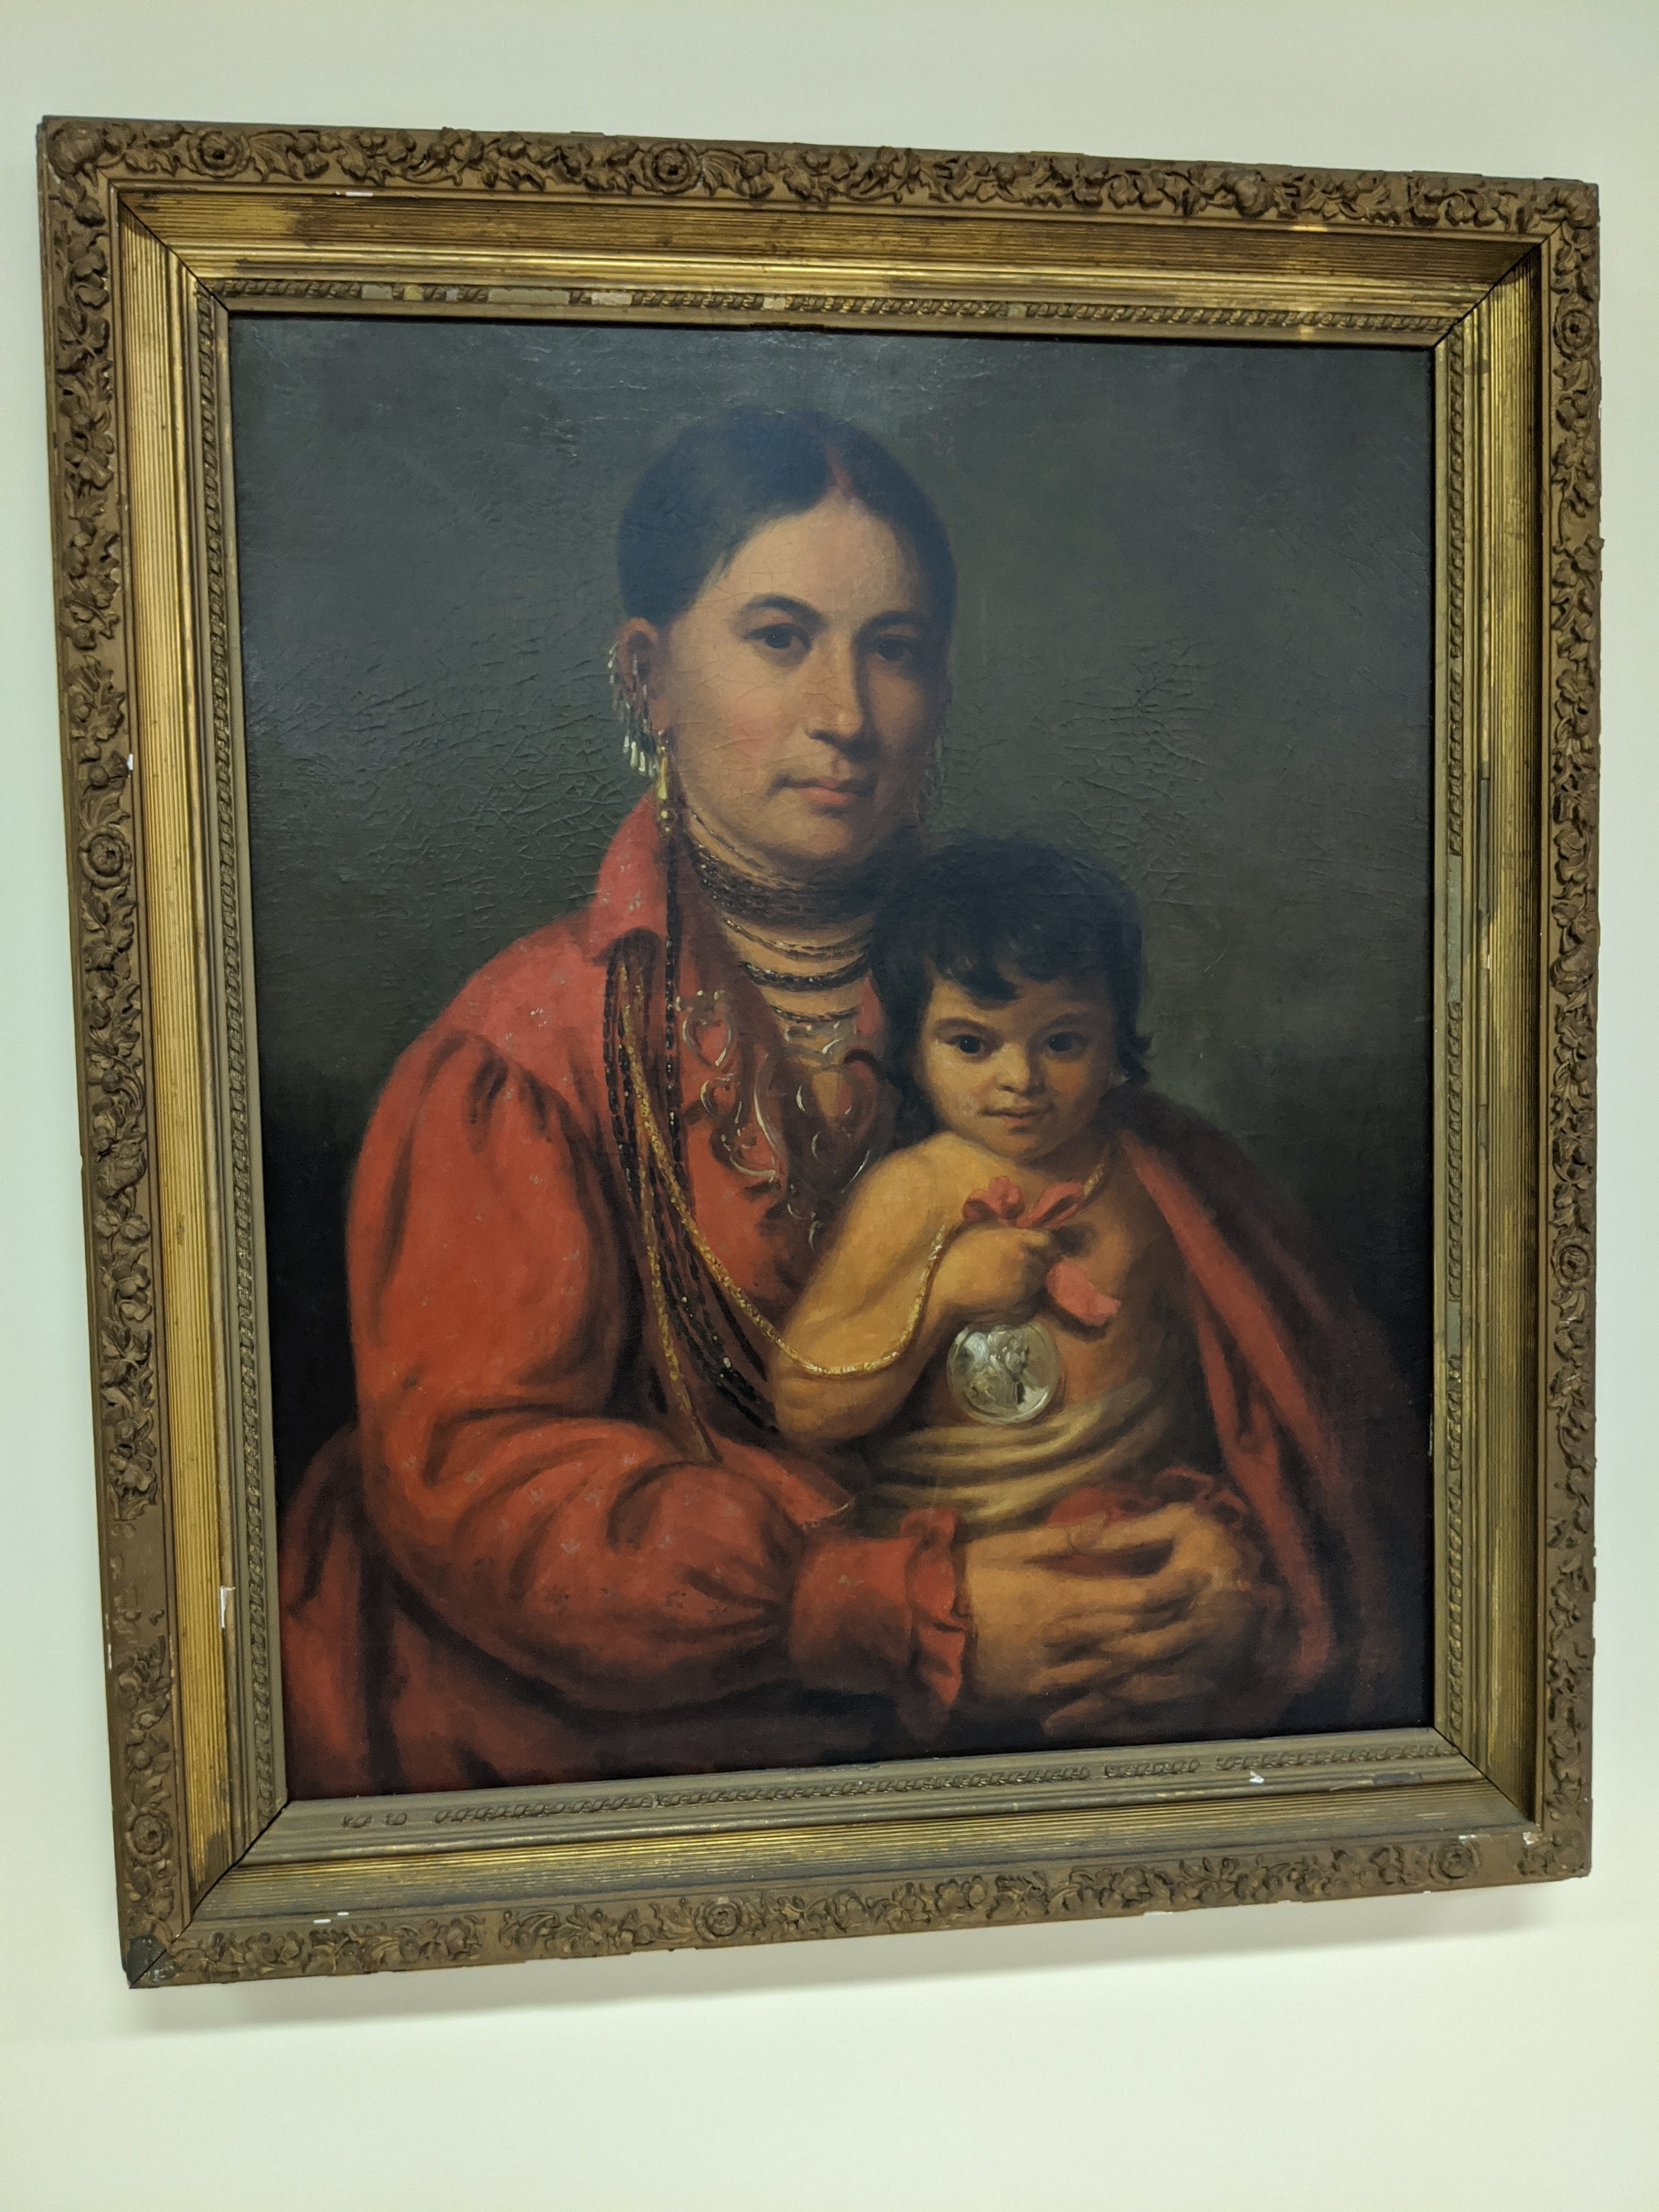 Image shows an oil painting in an elaborate gold gilt frame that depicts an attractive Native American woman holding her baby. She wears a red blouse which covers the baby's shoulders. A silver Indian Peace Medal around her neck is held by the baby.